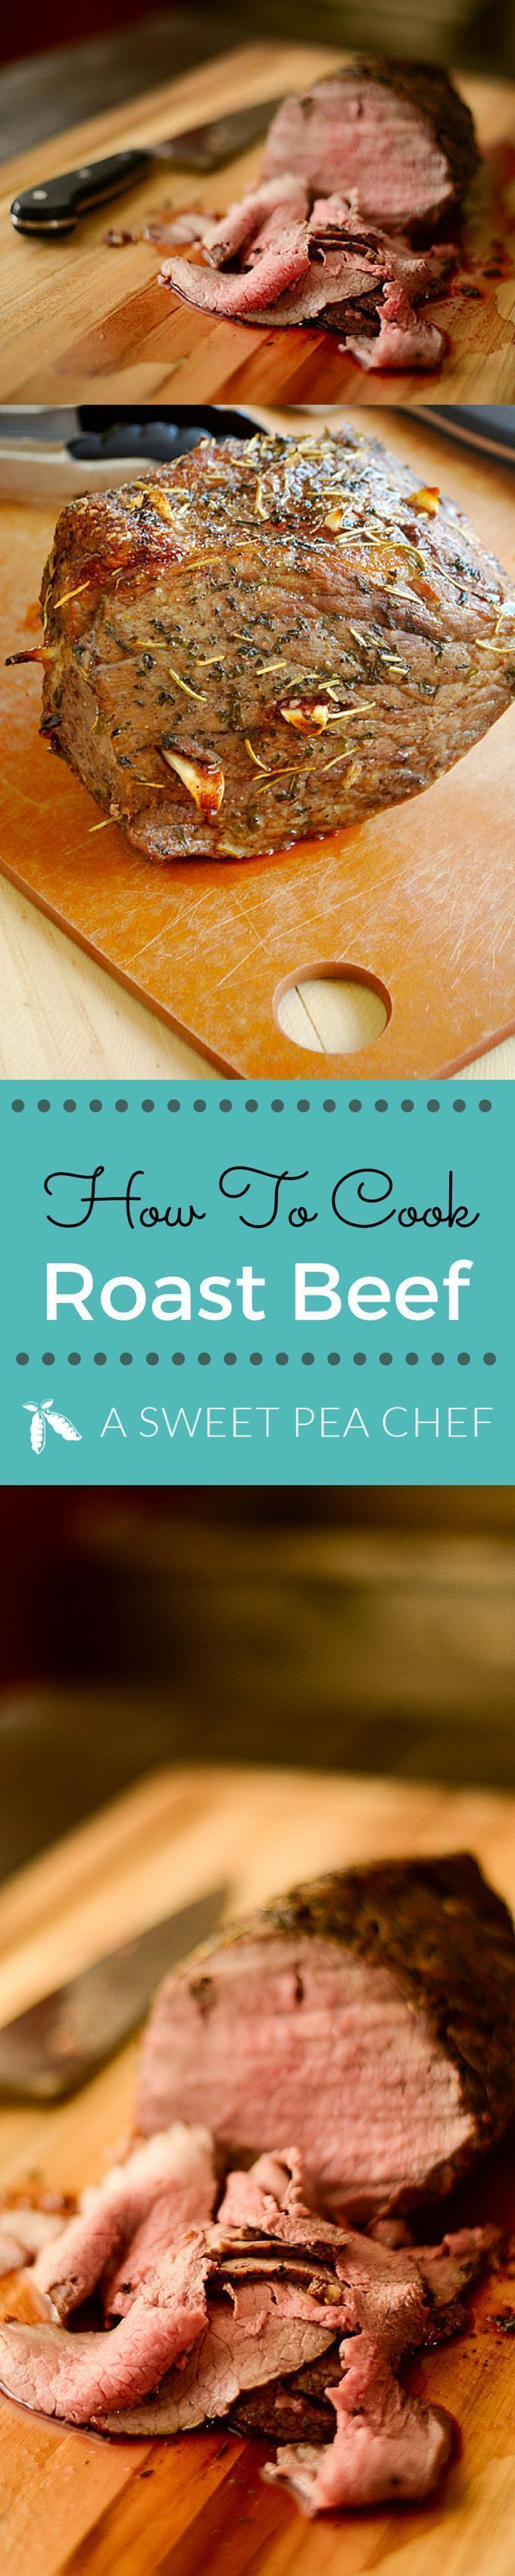 How to Cook Roast Beef #sunday #dinner #roastbeef #asweetpeachef Lacey Baier http://www.asweetpeachef.com